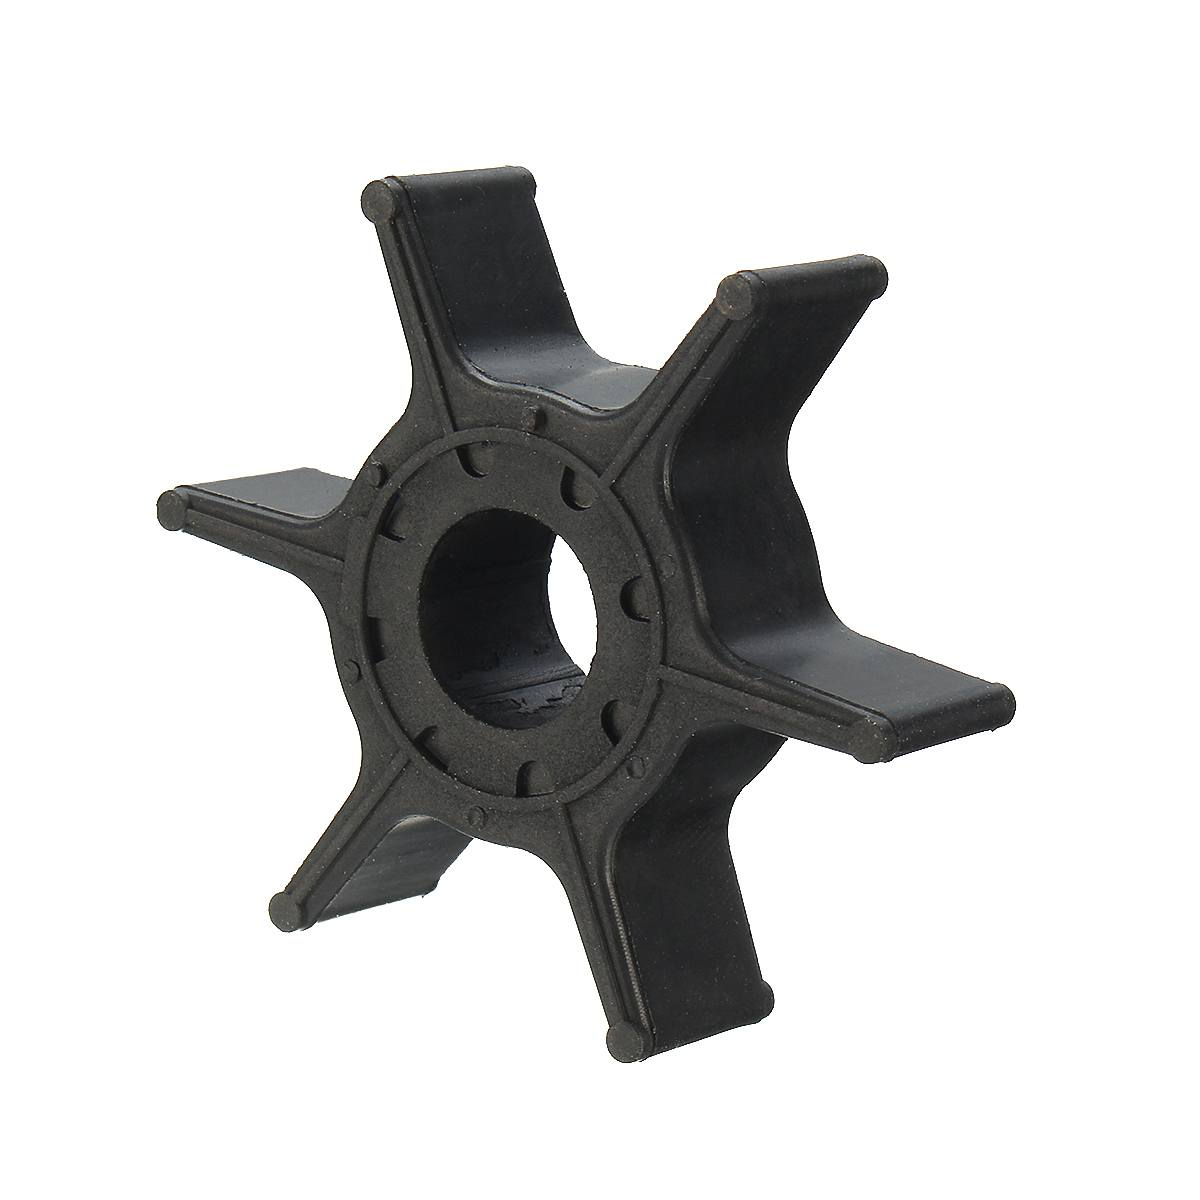 Water Pump Impeller For Yamaha 8HP 9.9HP <font><b>15HP</b></font> 20HP <font><b>Outboard</b></font> <font><b>Motor</b></font> 63V-44352-01 Black Rubber 6 Blades Boat Parts & Accessories image